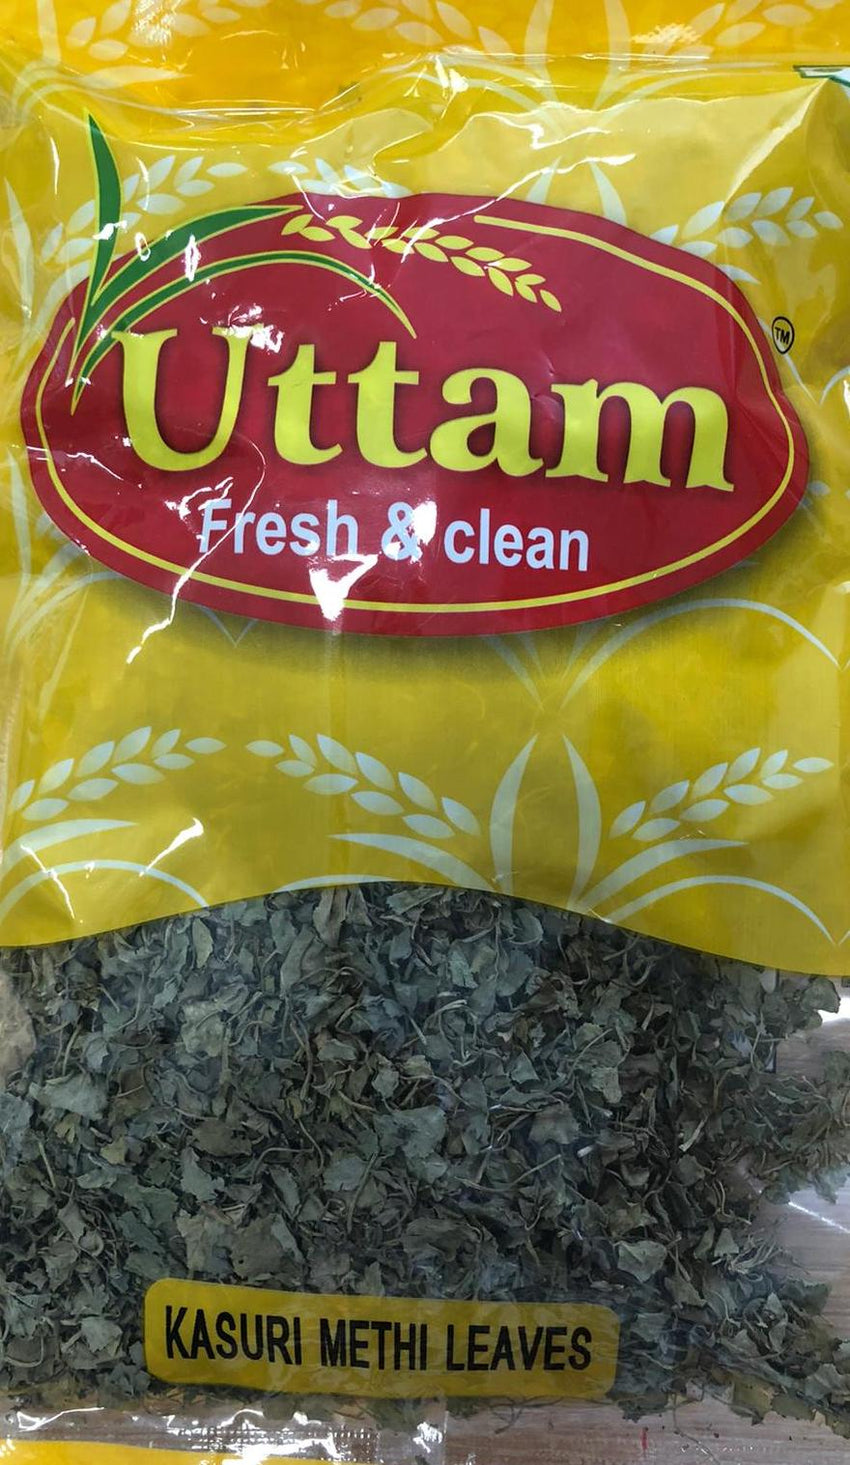 Kasuri Methi ( Fenugreek) Leaves, Uttam 50g